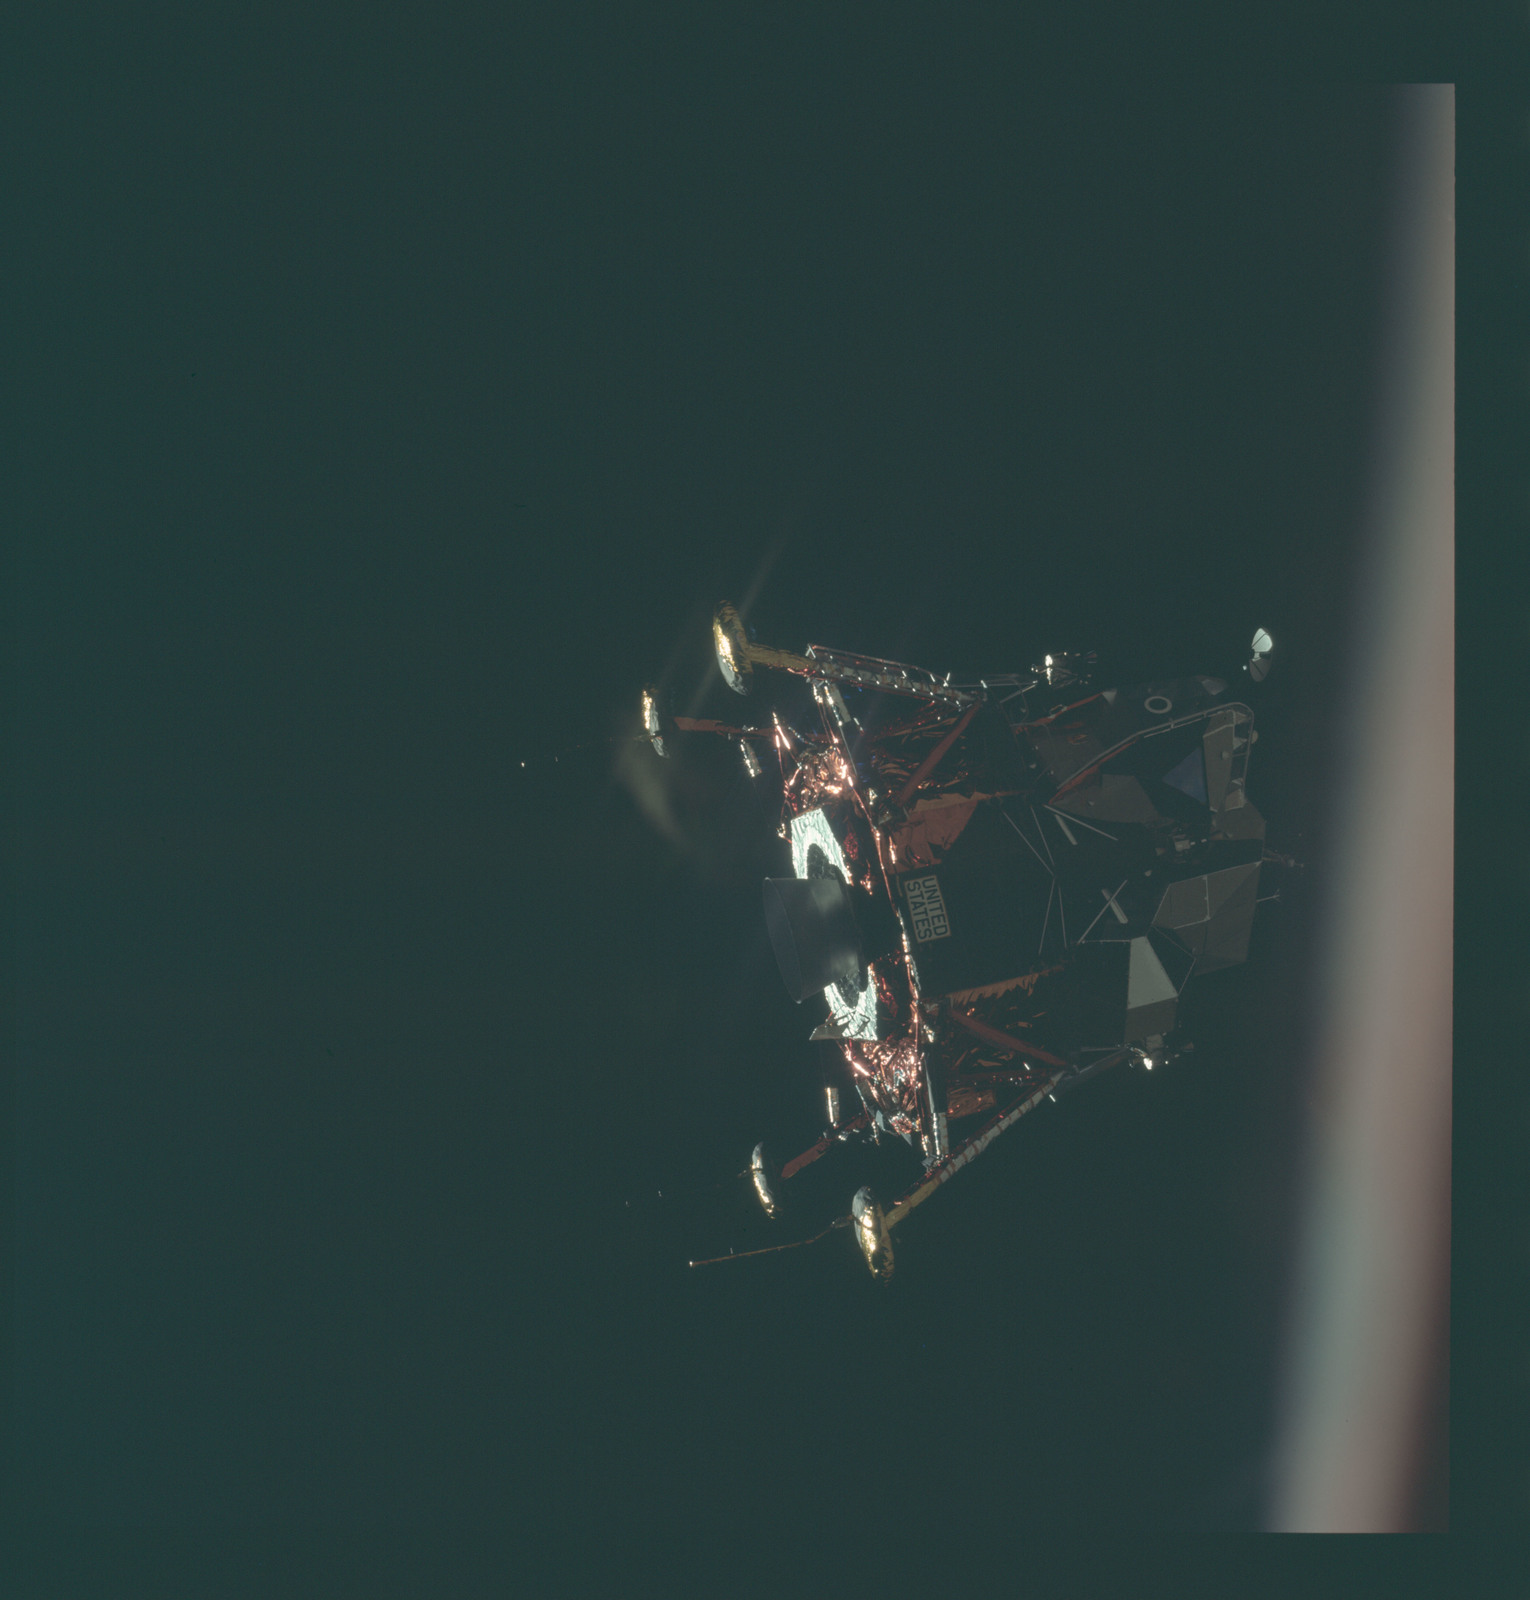 AS11-44-6578 - Apollo 11 - Apollo 11 Mission image - View of Lunar Module separation from the Command Module